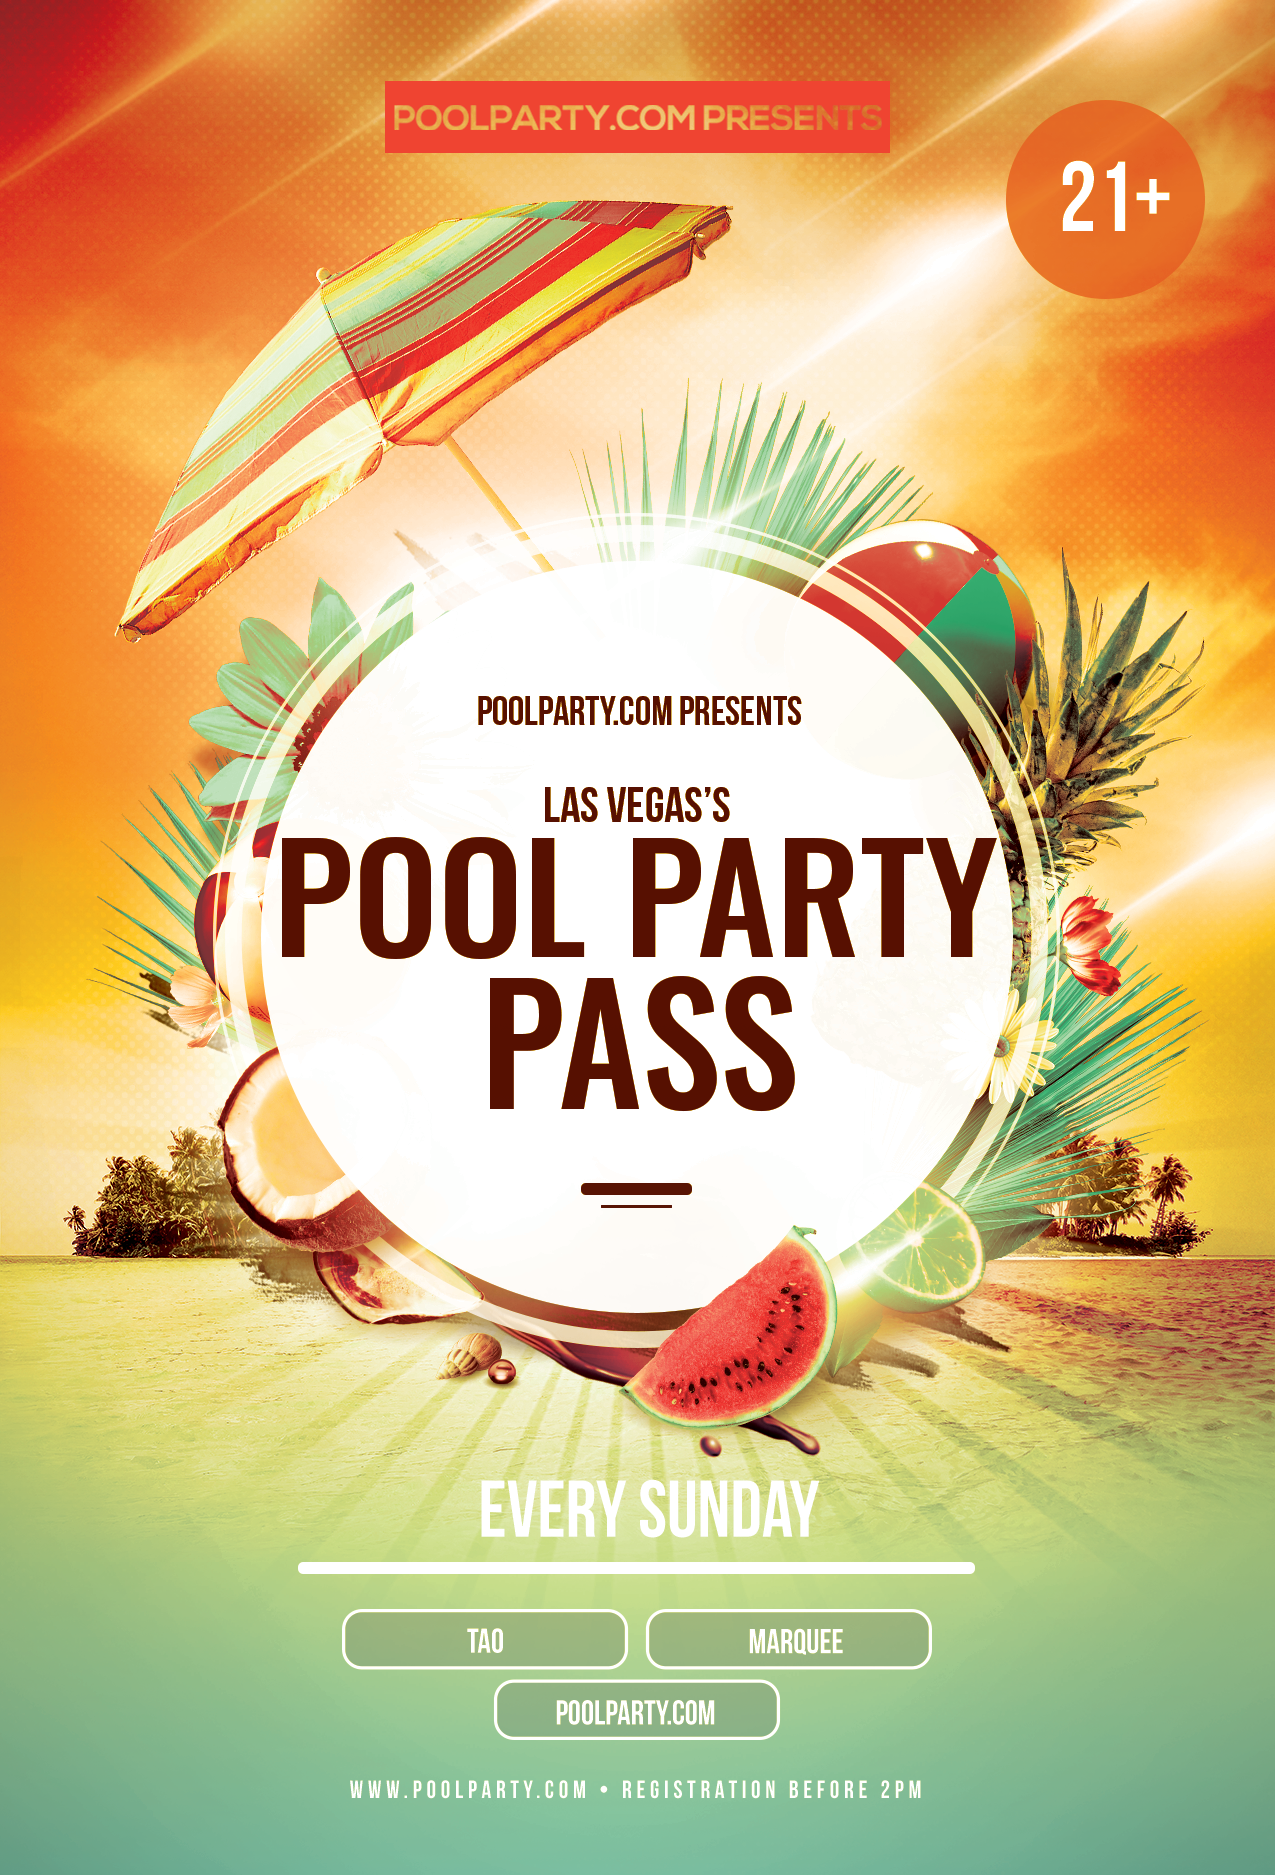 Sunday's Pool Party Pass (July 21st)*NOW INCLUDING FREE ADMISSION TO TAO NIGHTCLUB*